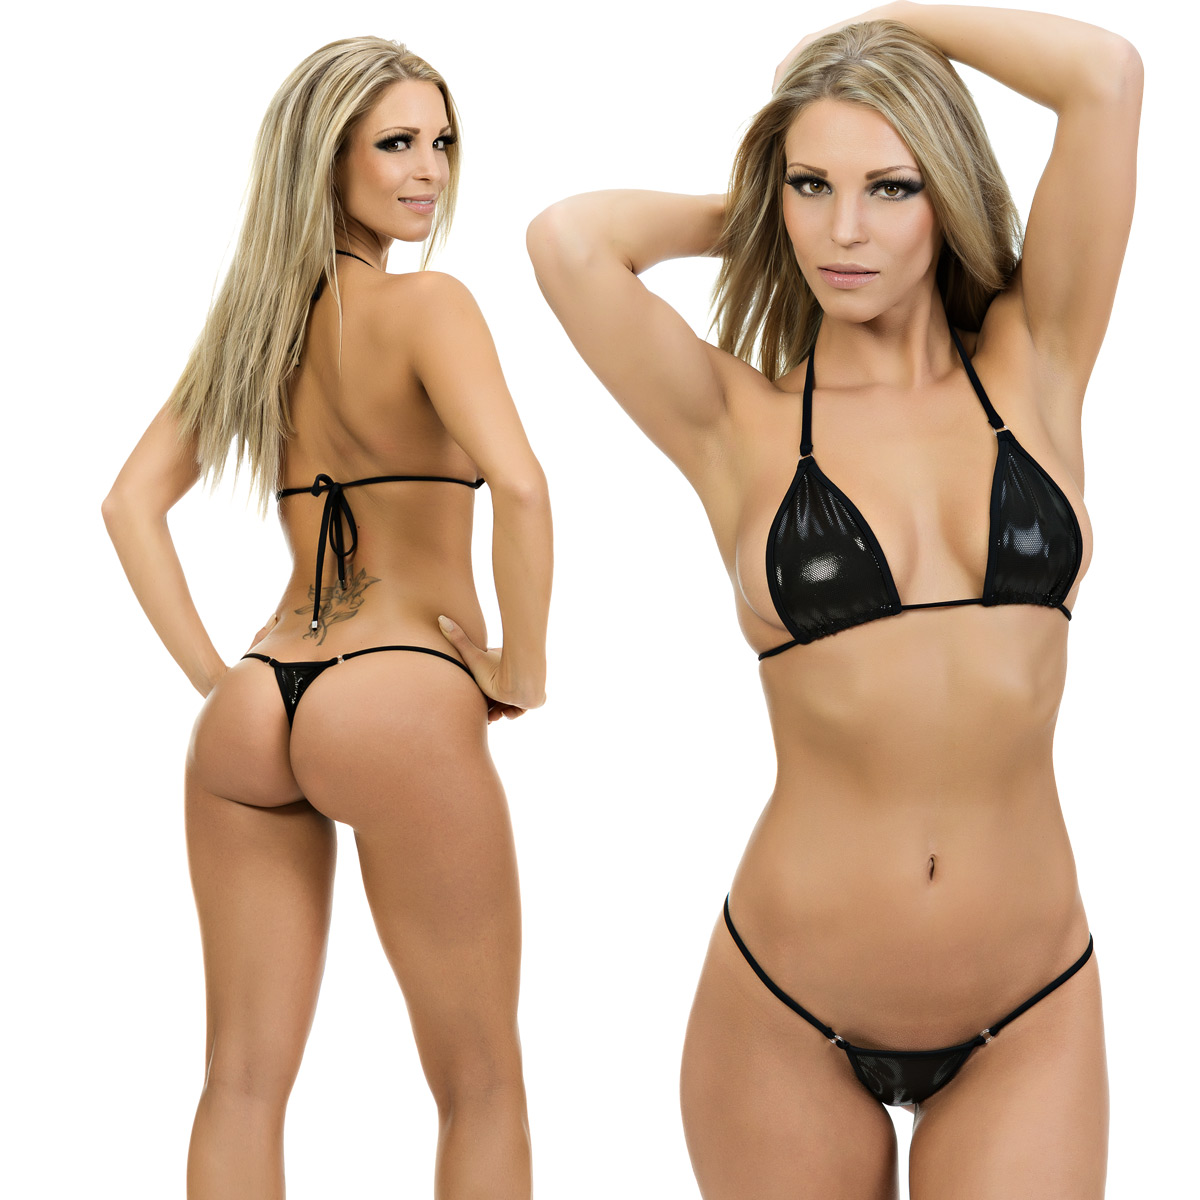 freaky rock geesthacht string bikini schwimmbad